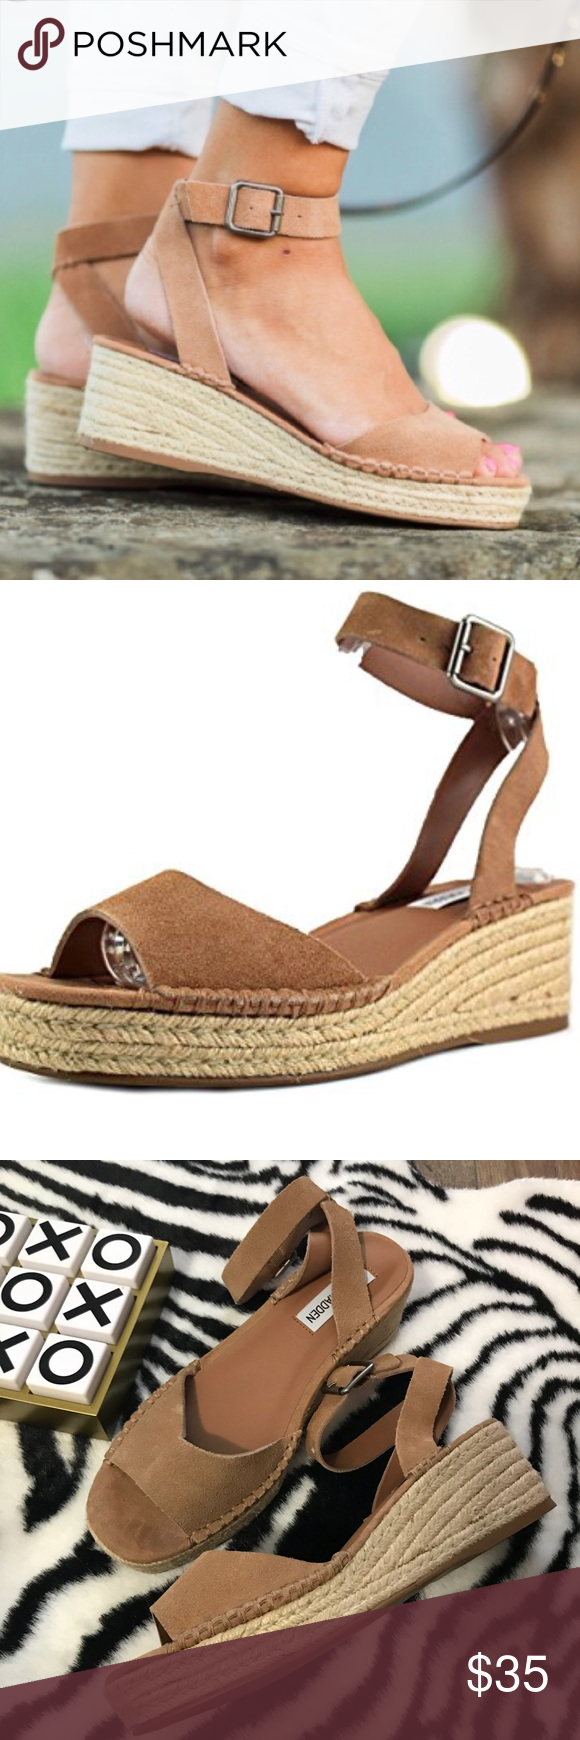 a6707426a8d Steve Madden Elody Wedge Espadrilles NWOT sz 8, tan color 2 in tall ...